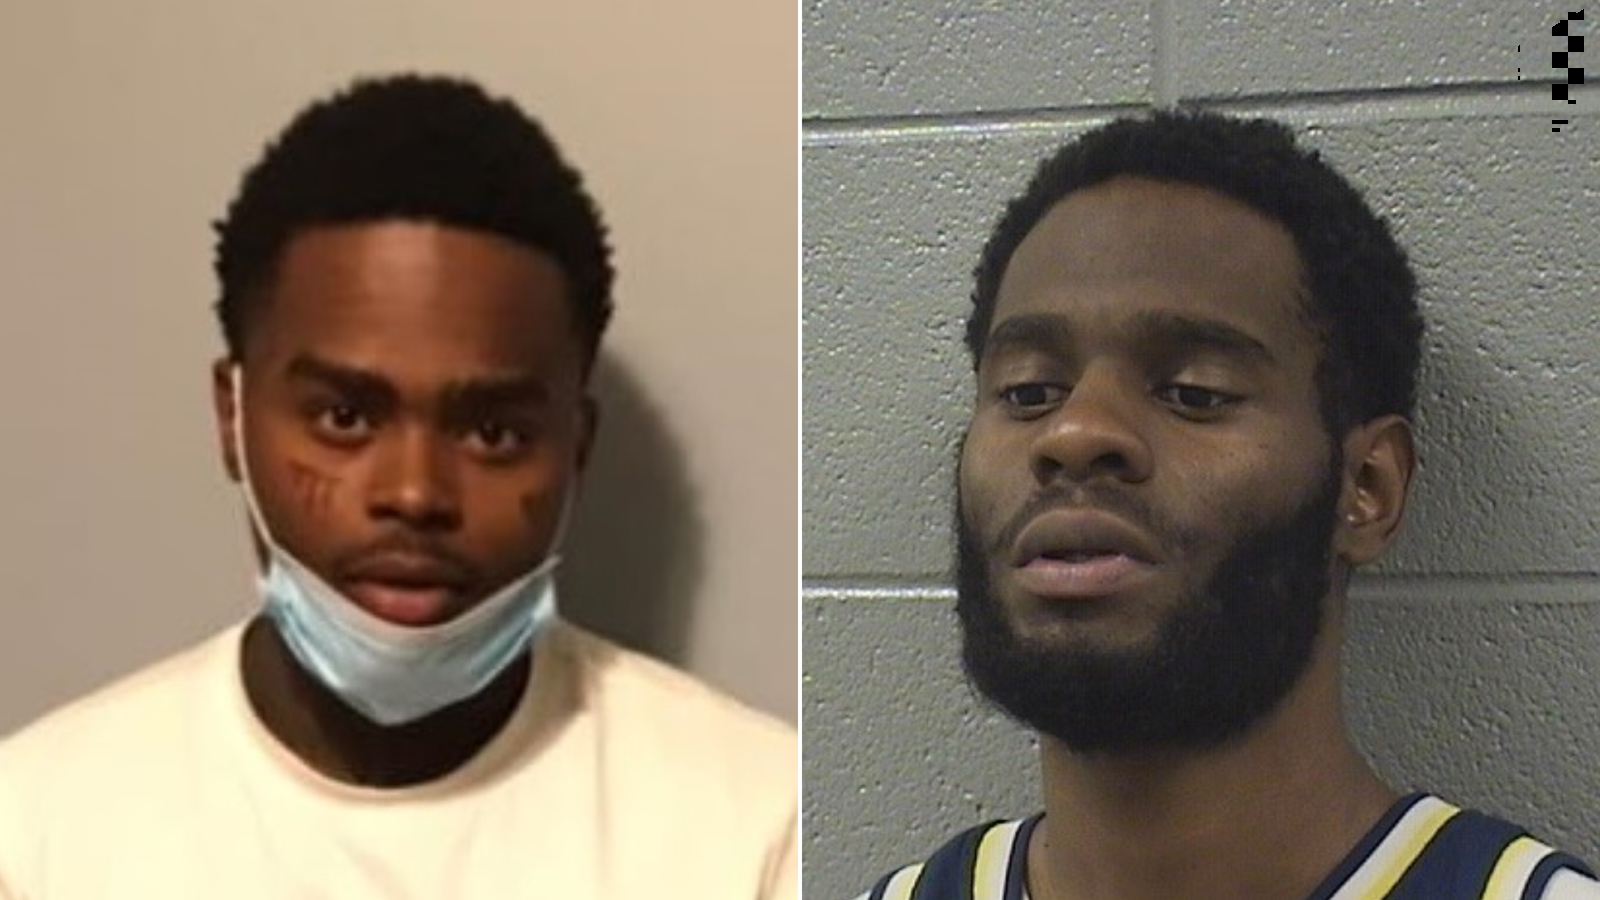 """Quintin Henderson (left), 28, was set to be released from the Cook County jail on May 2 """"for a narcotics charge when he provided his personal information to Jahquez Scott (right) for a promise of $1,000,' the sheriff's office said in a statement."""